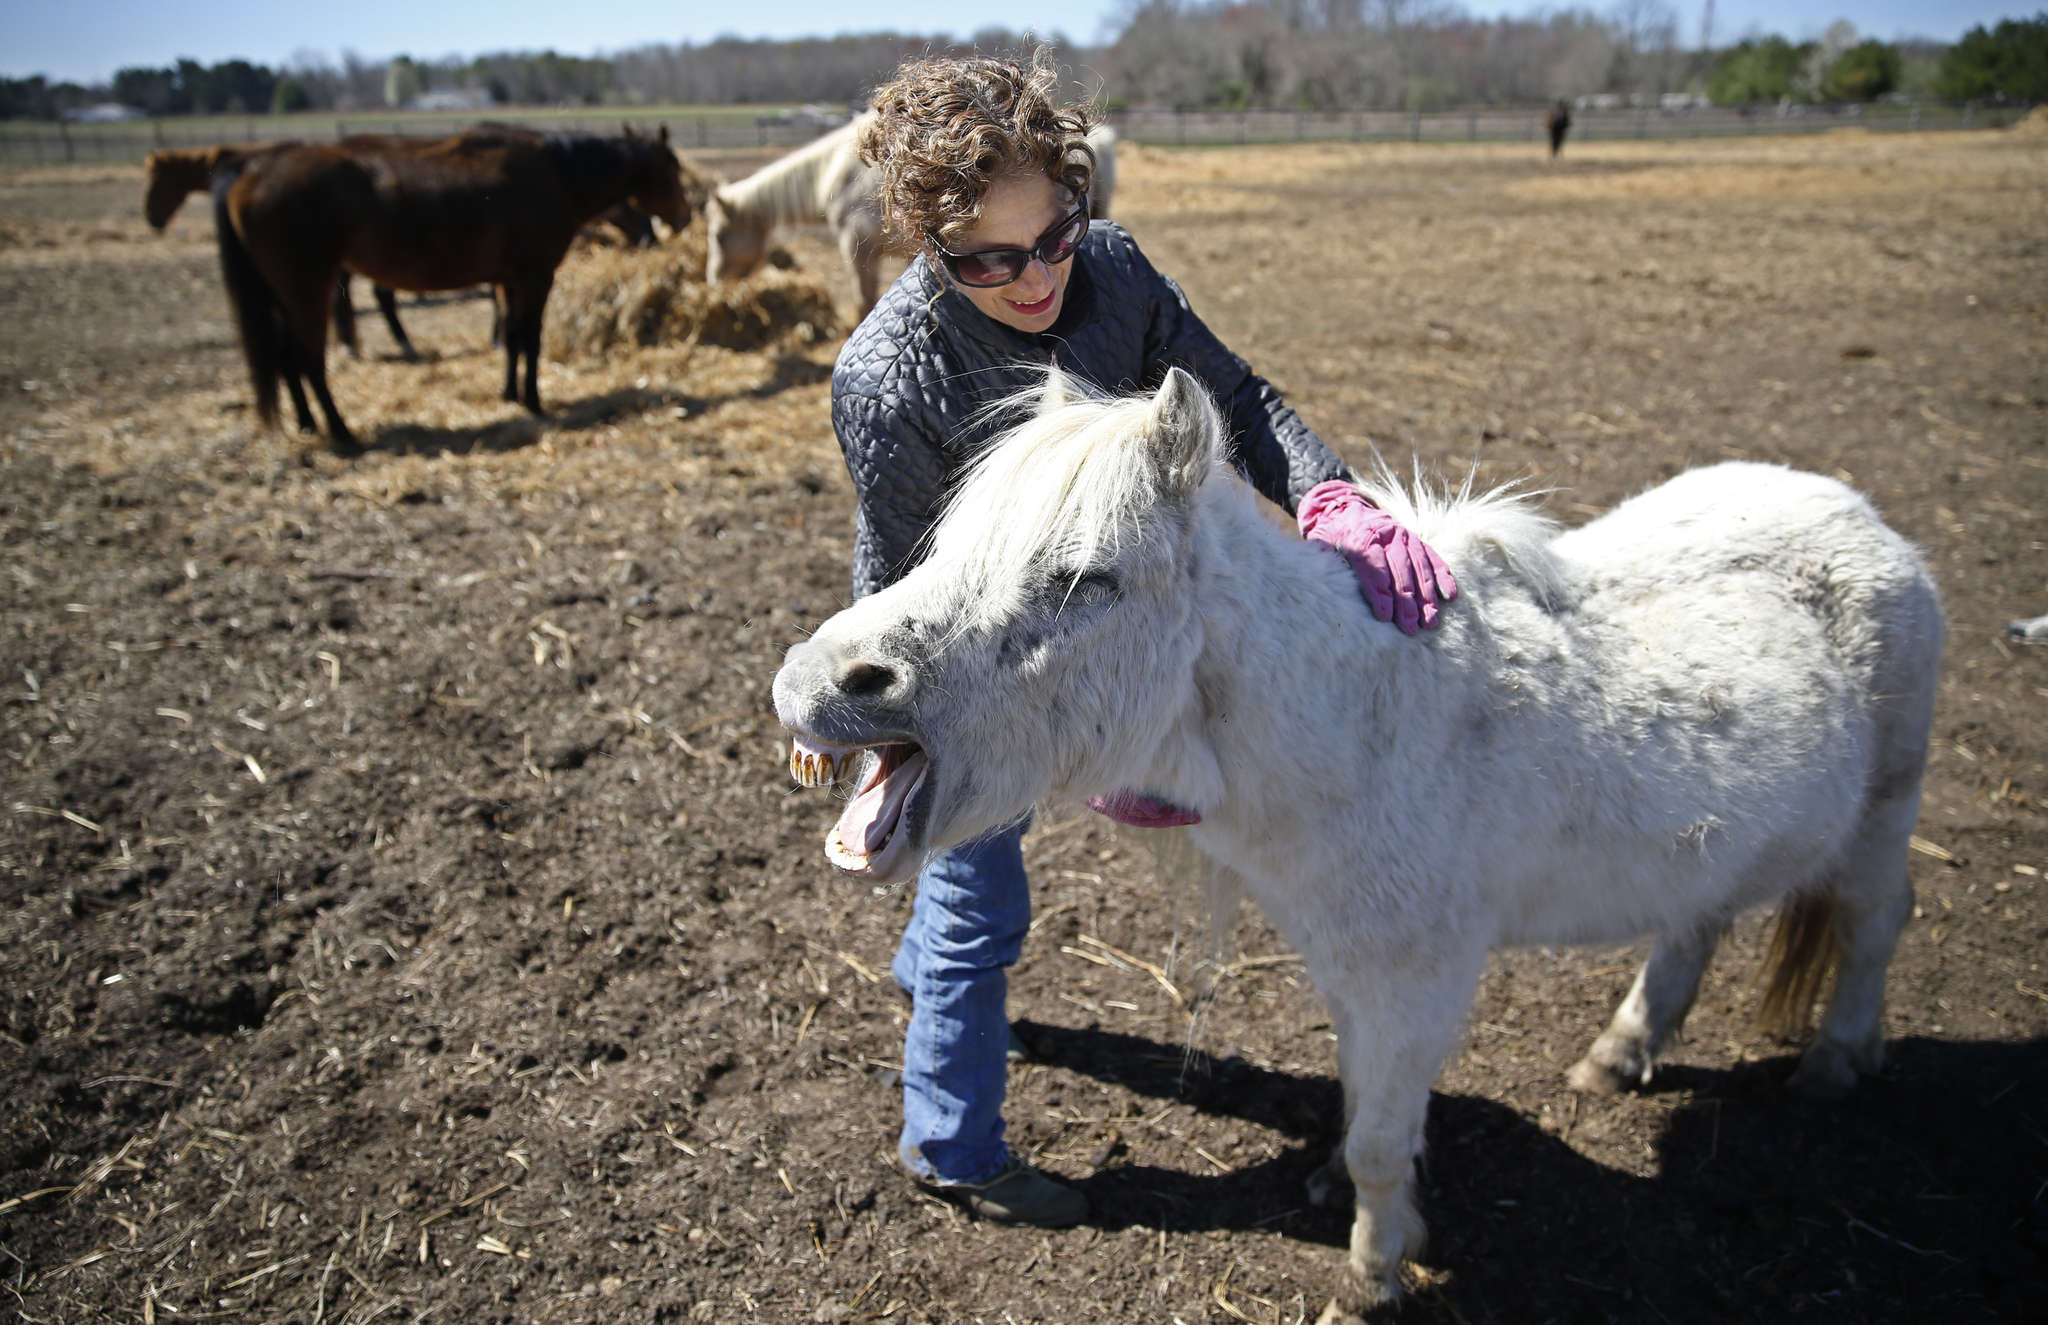 Marshmallow, a Welsh pony, gives out a little laugh as she is stroked by Sarah Rabinowitz Mognoni, who rescued her.